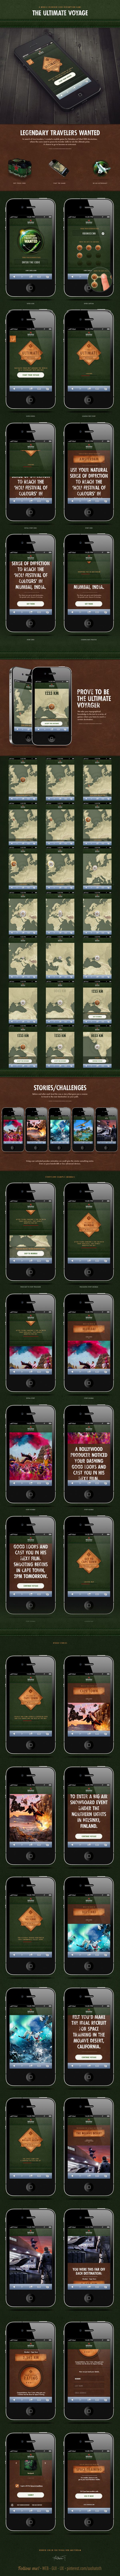 A Mobile in browser code redemption game for Heineken by Robbin Cenijn *** #web #gui #behance